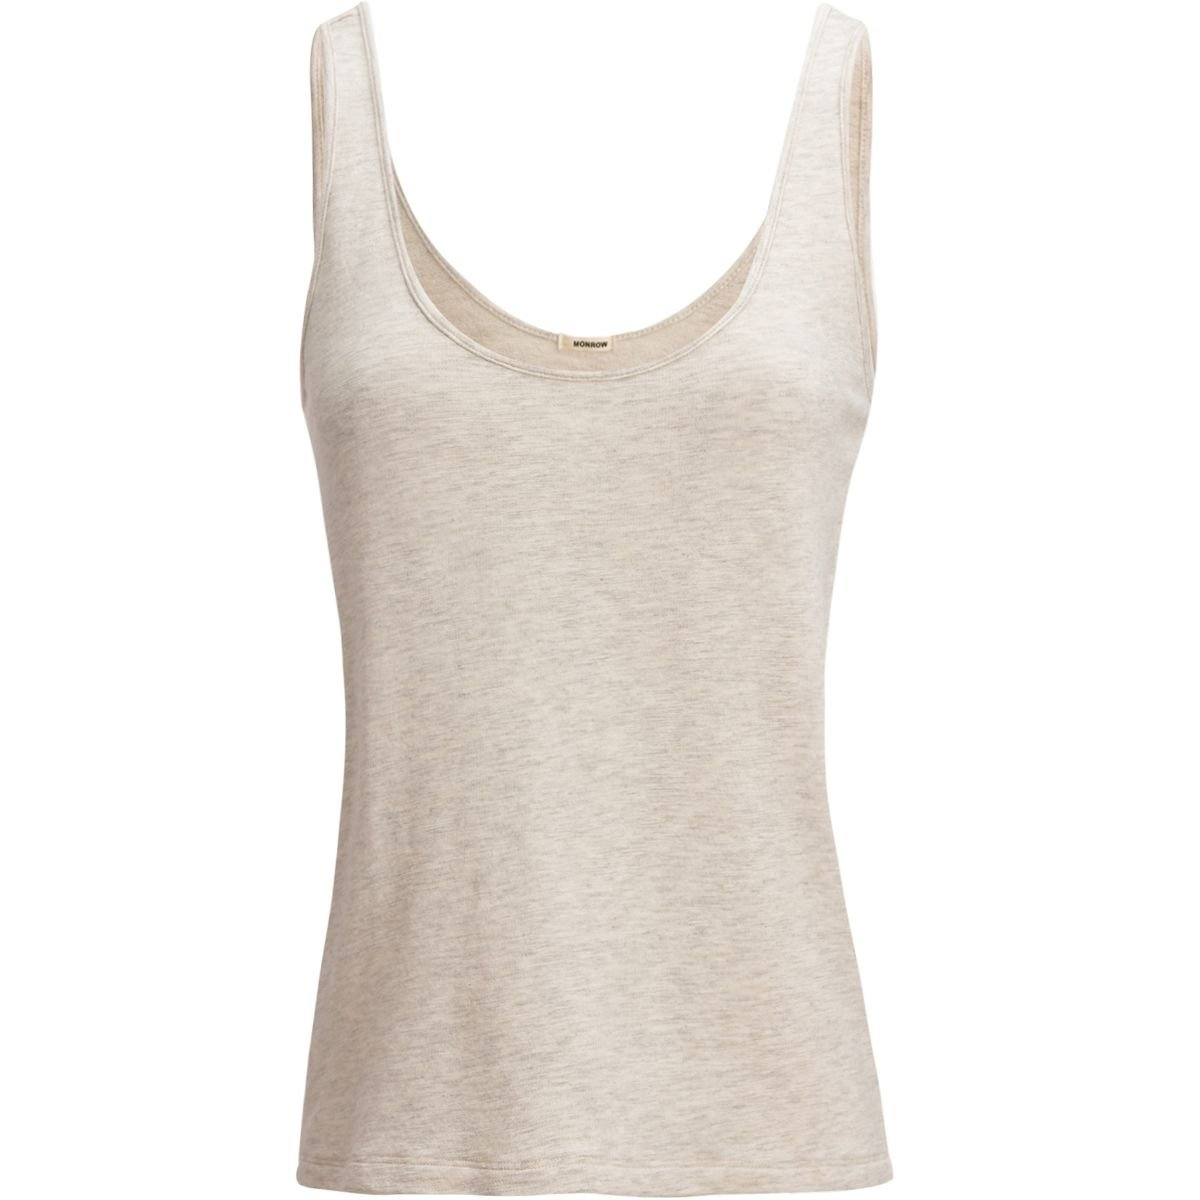 Monrow Supersoft Loose Tank Top - Women's Ash, S